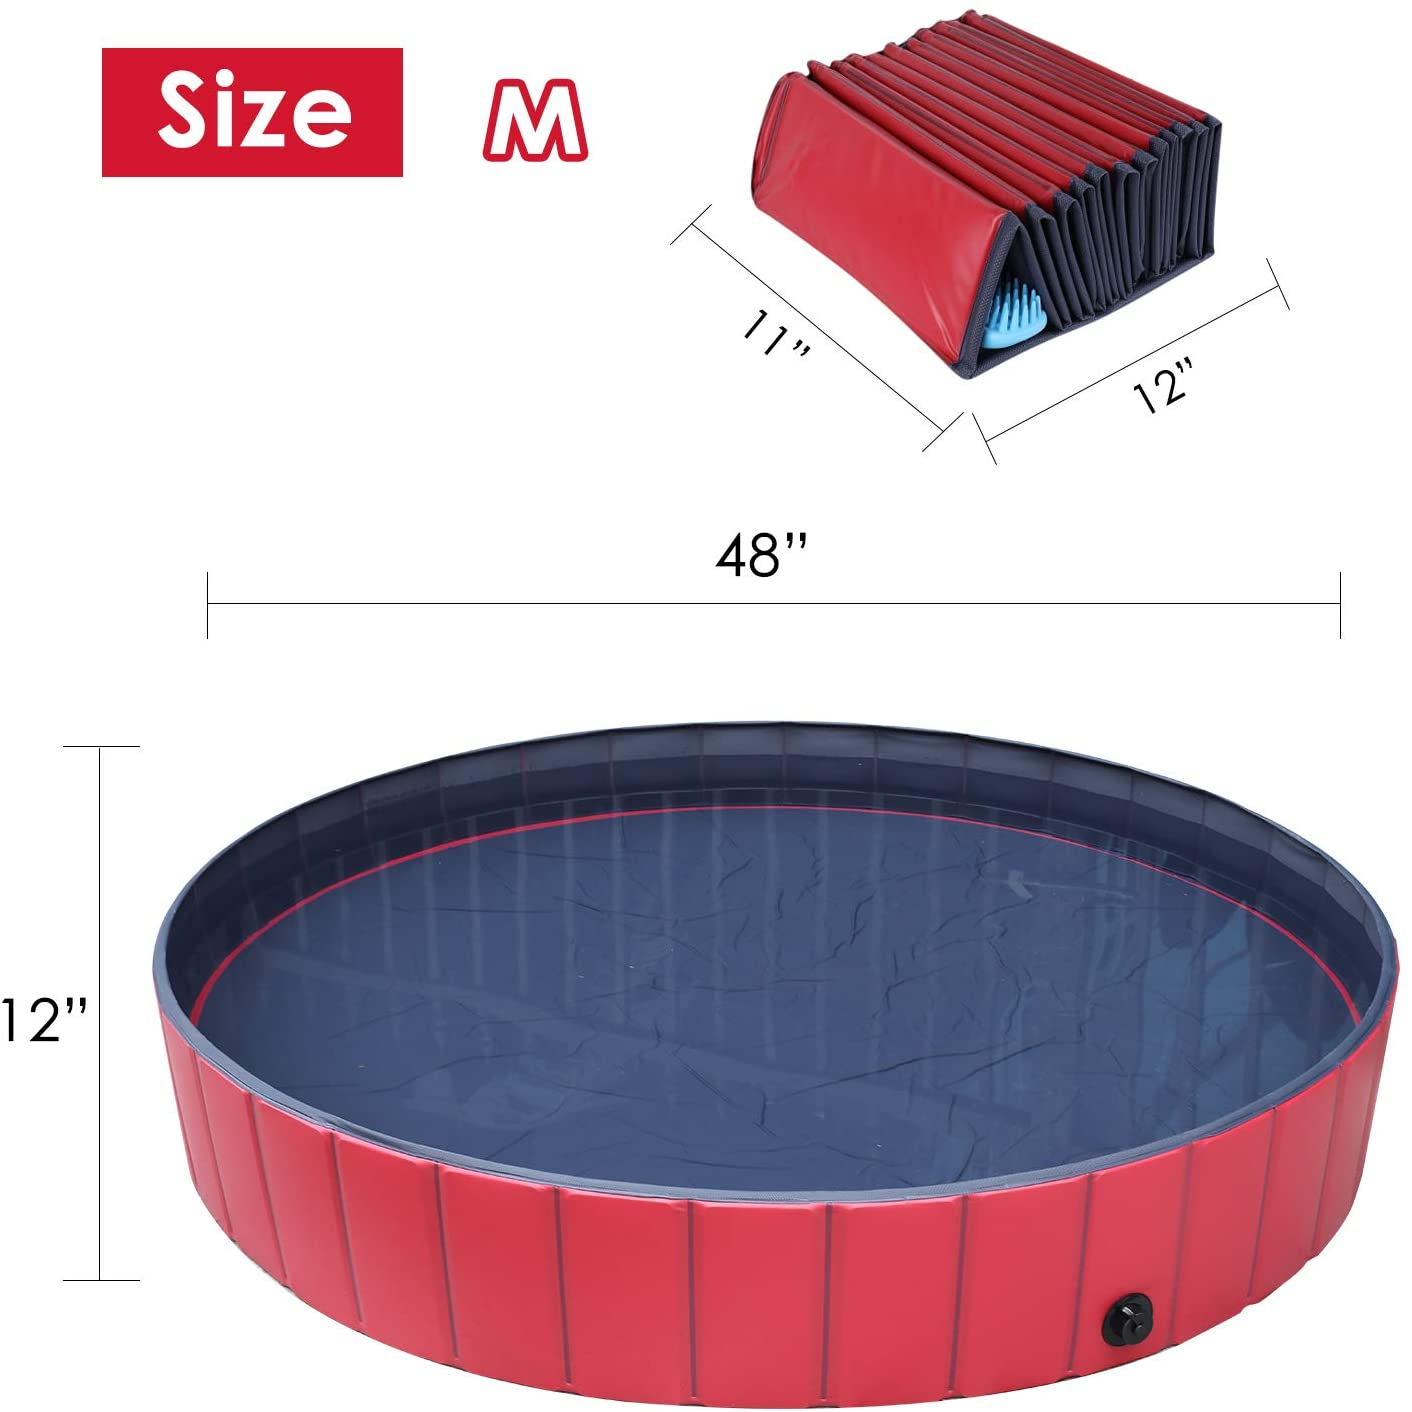 Dog paddling pool: List of Best Puncture proof dog pools 2020